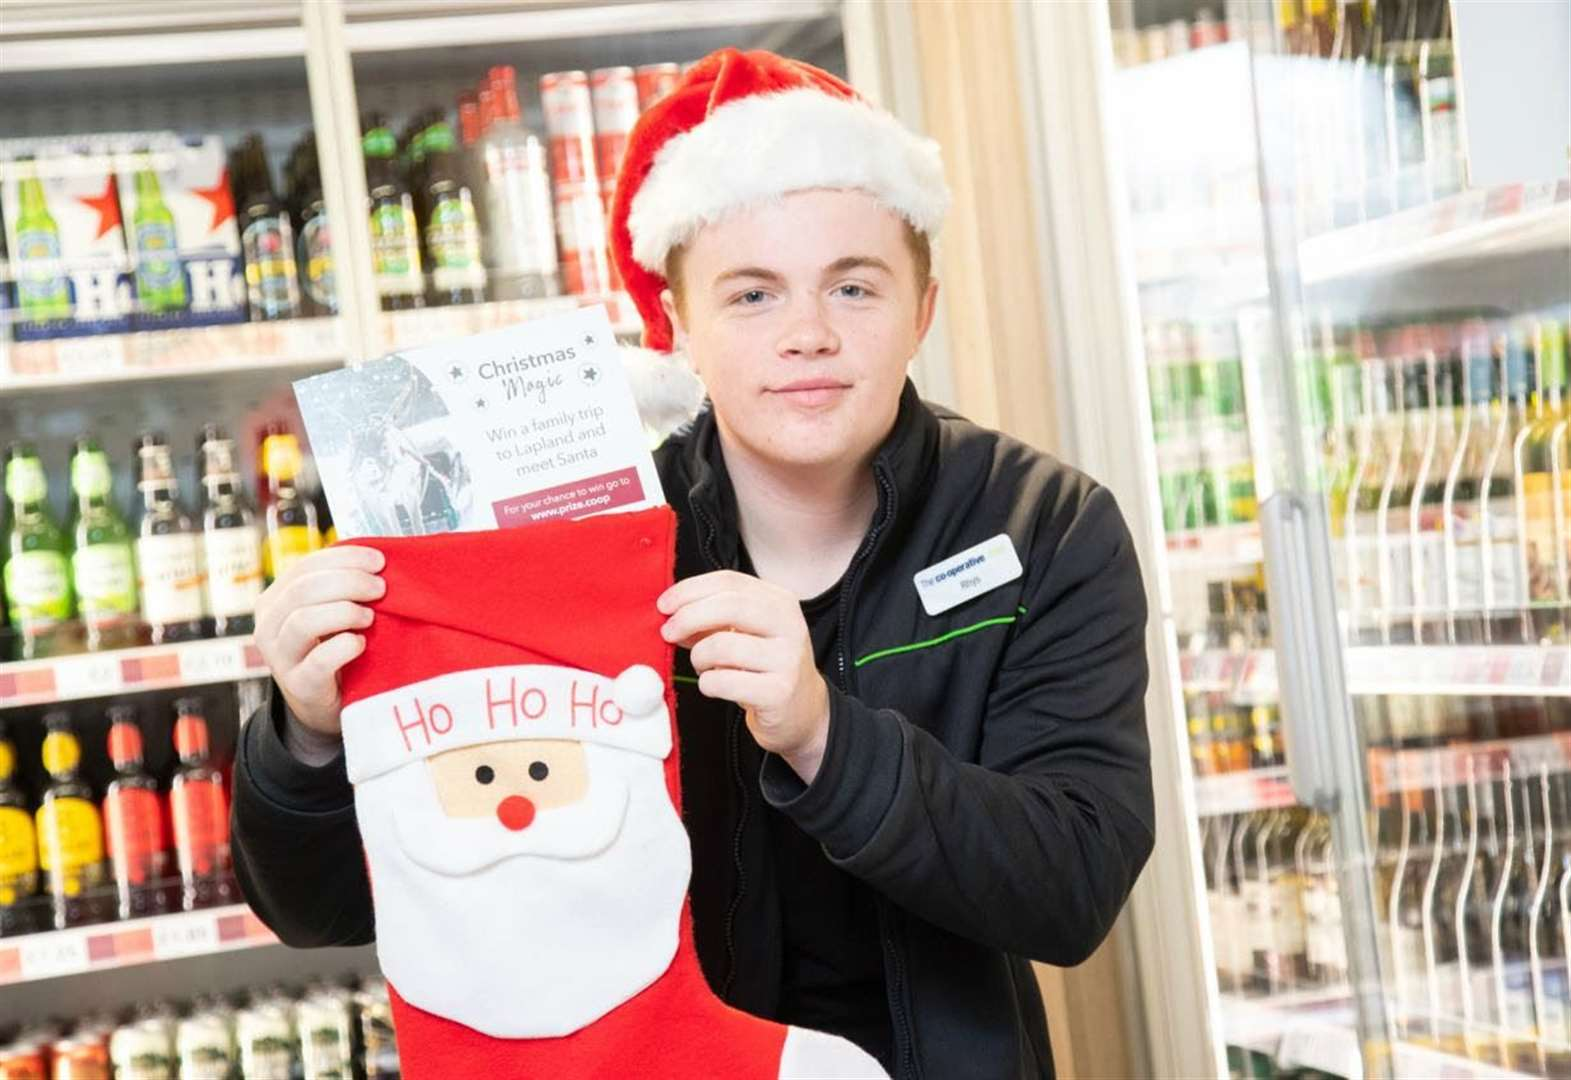 Retailer with stores in West Norfolk launches competition to win a trip to Lapland worth £4,000